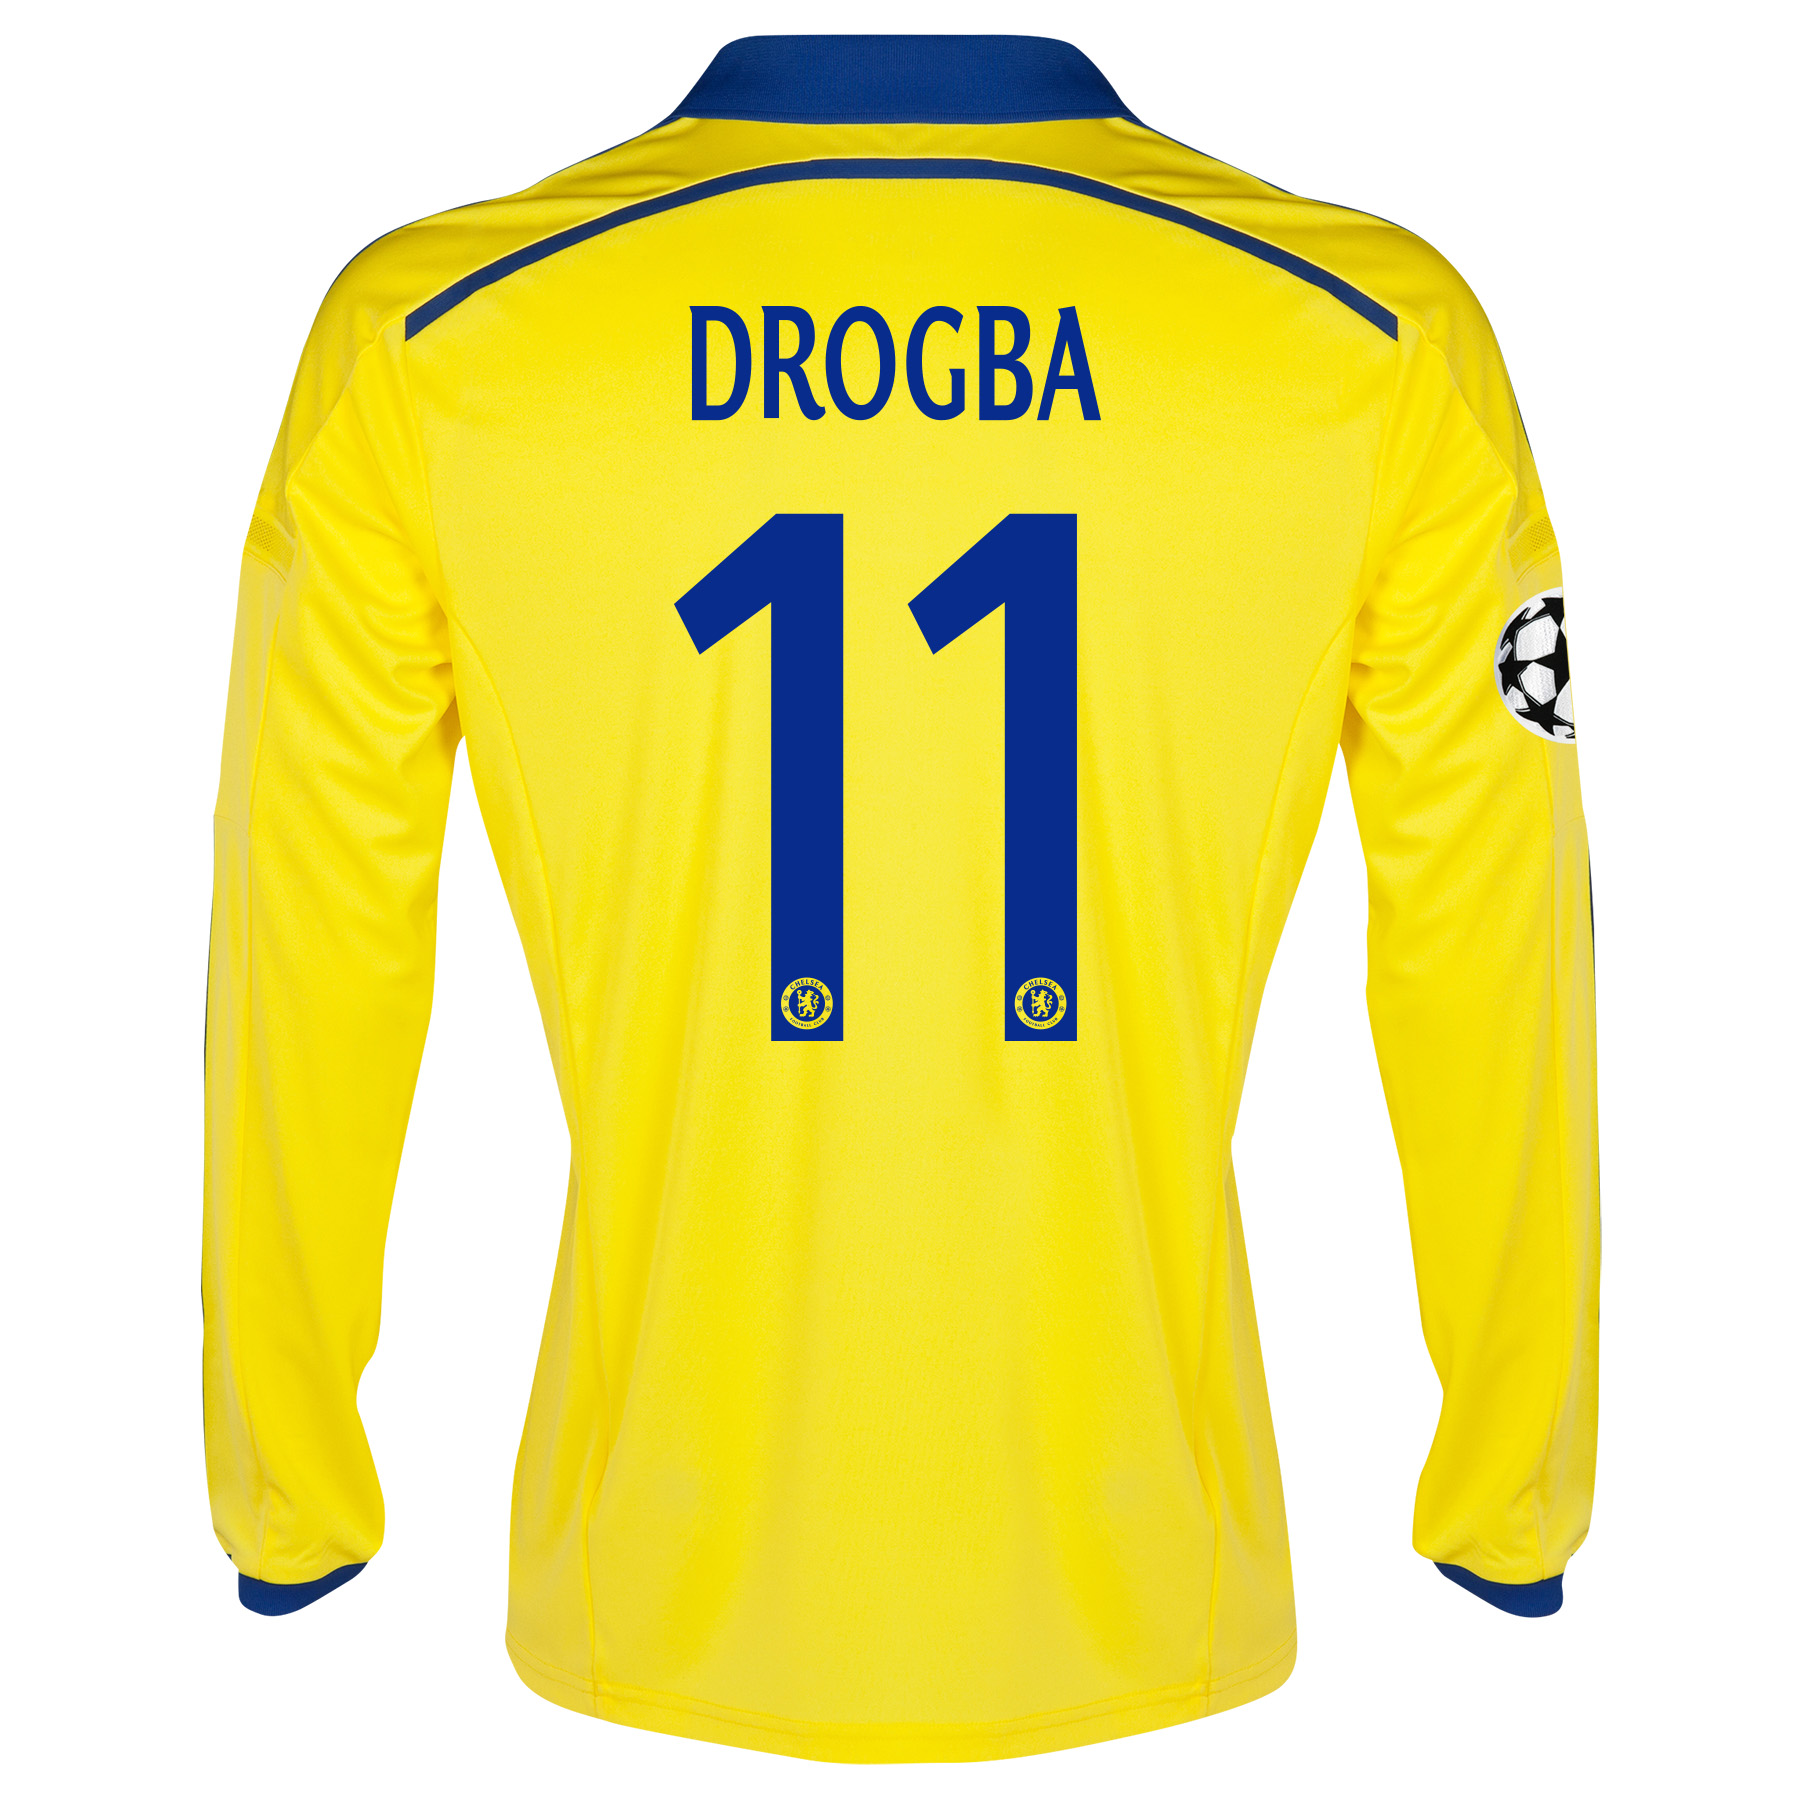 Chelsea Uefa Champions League Away Shirt 2014/15 - Long Sleeve with Drogba 11 printing